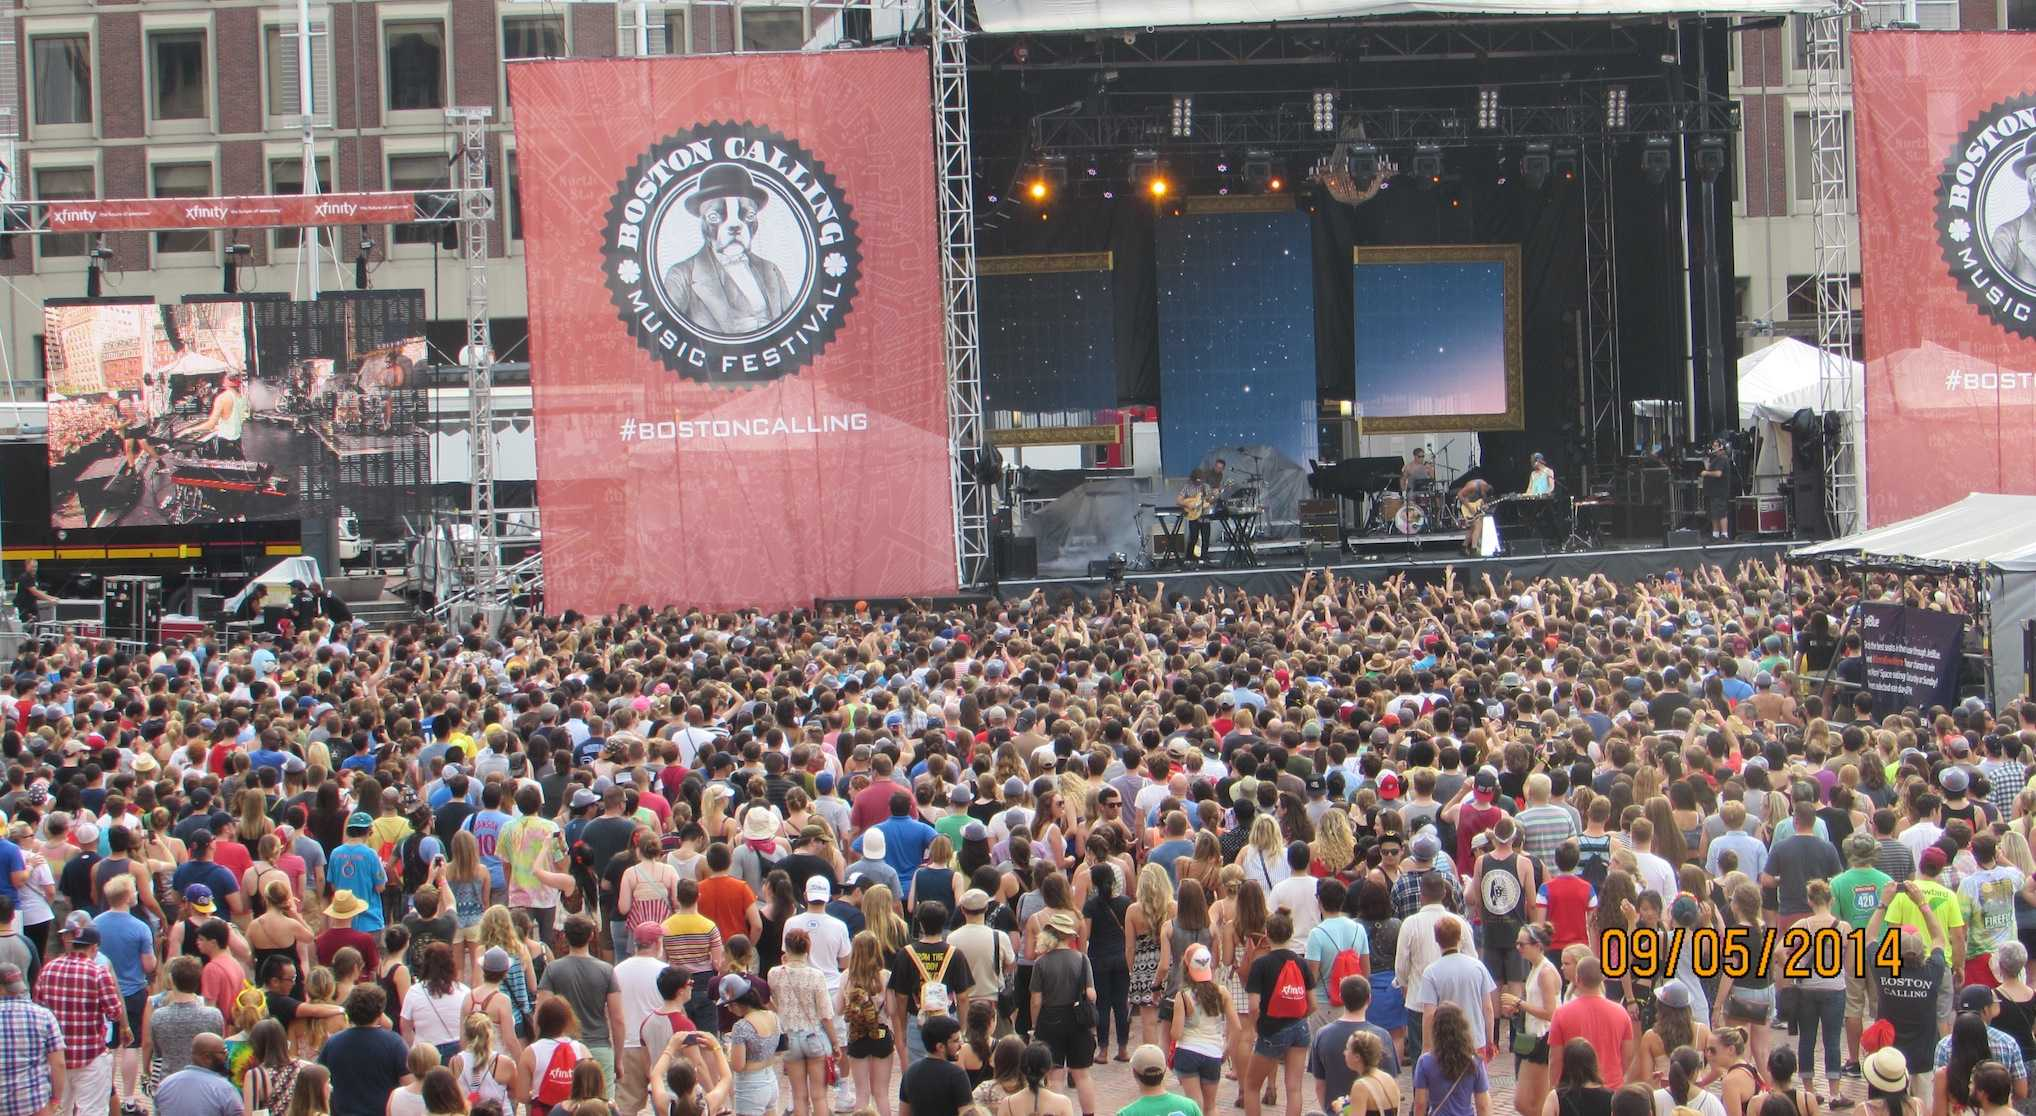 The crowd in front of the Capital One stage, one of two stages set up for the fourth Boston Calling music festival on Sept. 5-7, 2014.